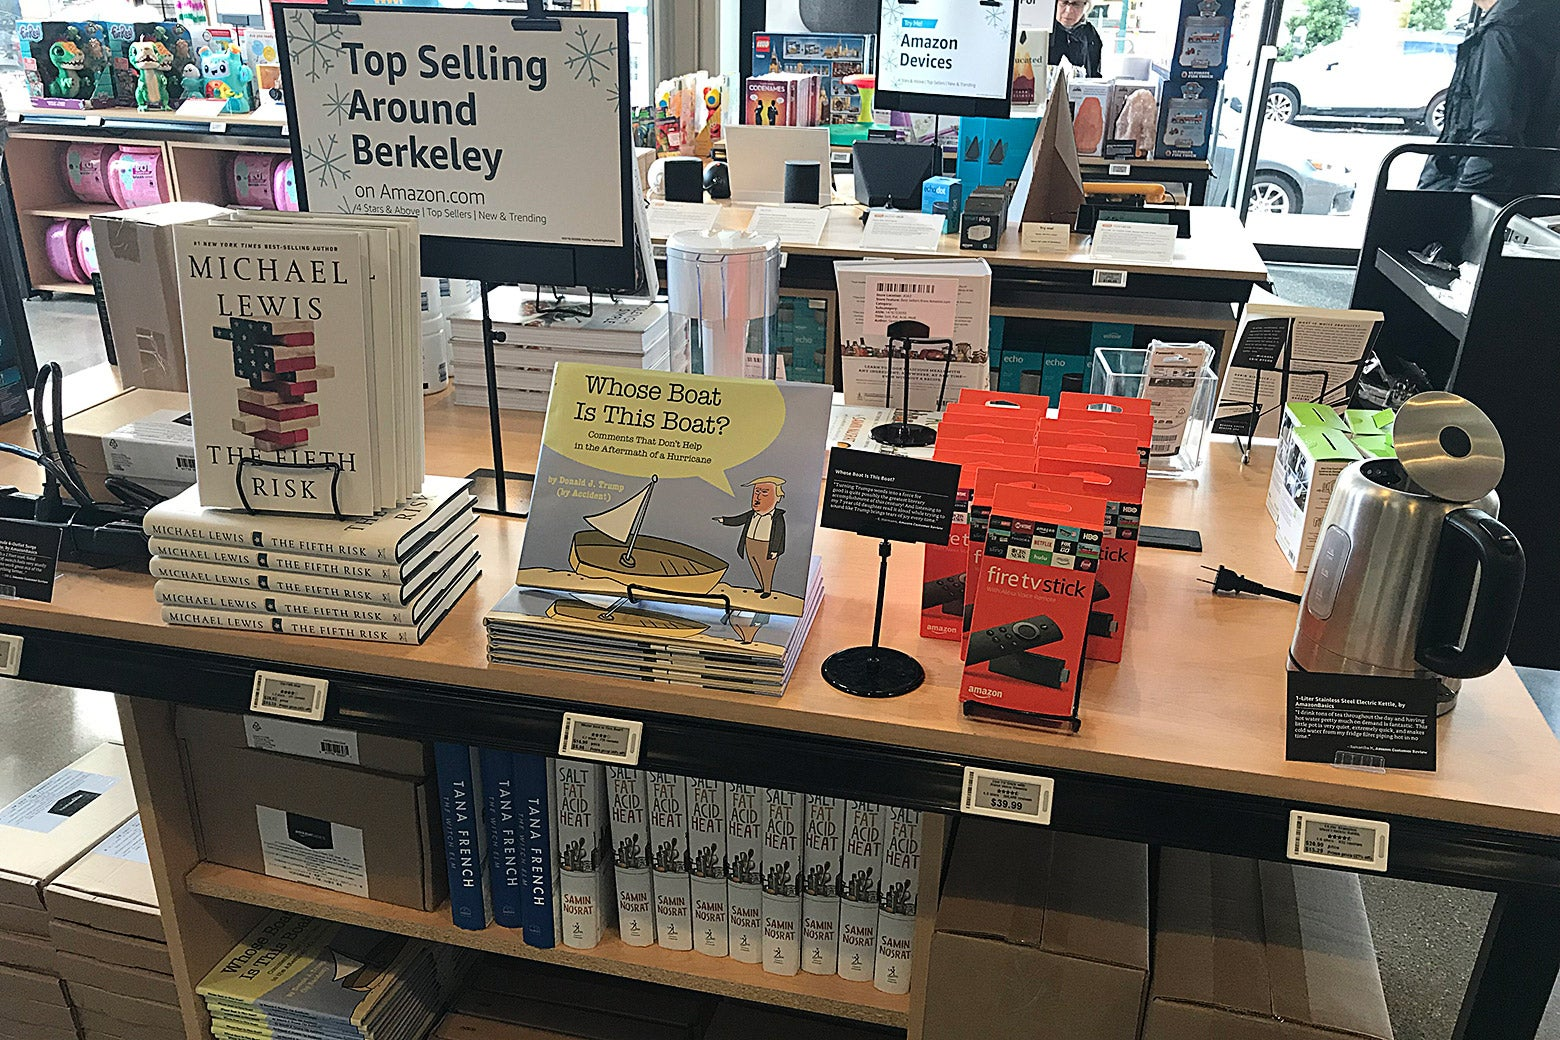 "A sign says ""Top Selling Around Berkeley"" over books by Michael Lewis, a Fire TV Stick, and other items."